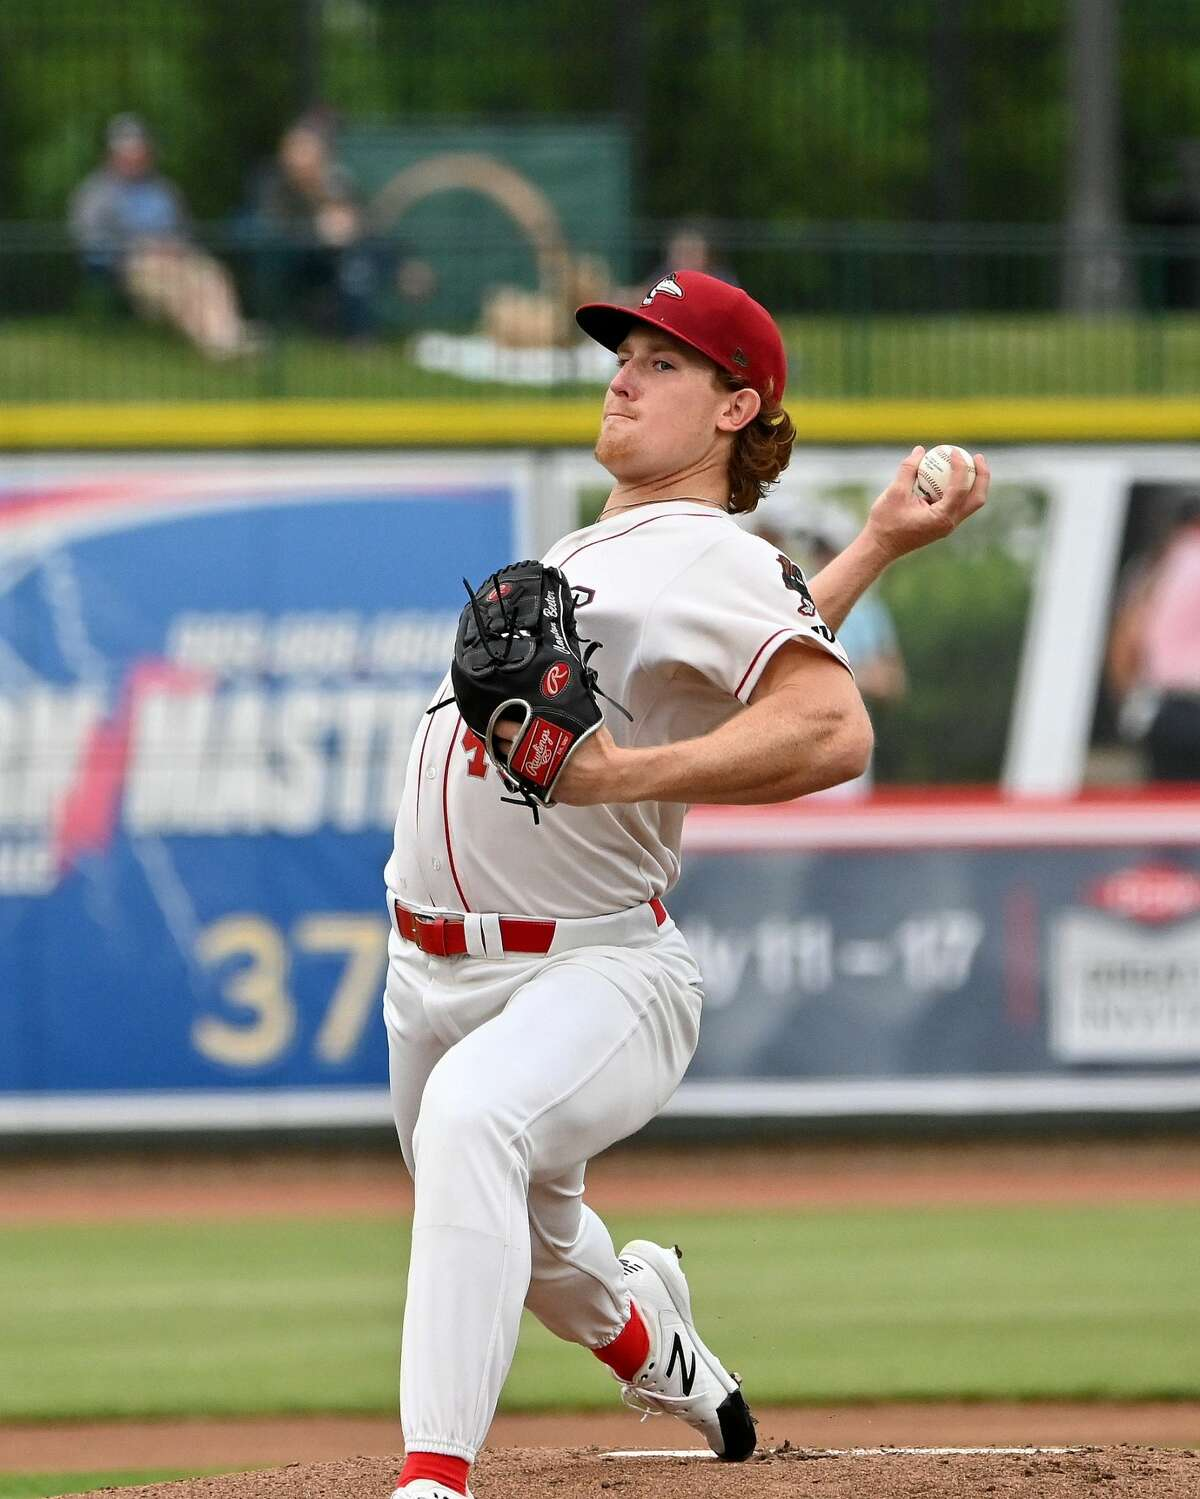 Loons starting pitcher Clayton Beeter pitches against the West Michigan Whitecaps on June 2 at Dow Diamond (Great Lakes Loons/Robert Spears)